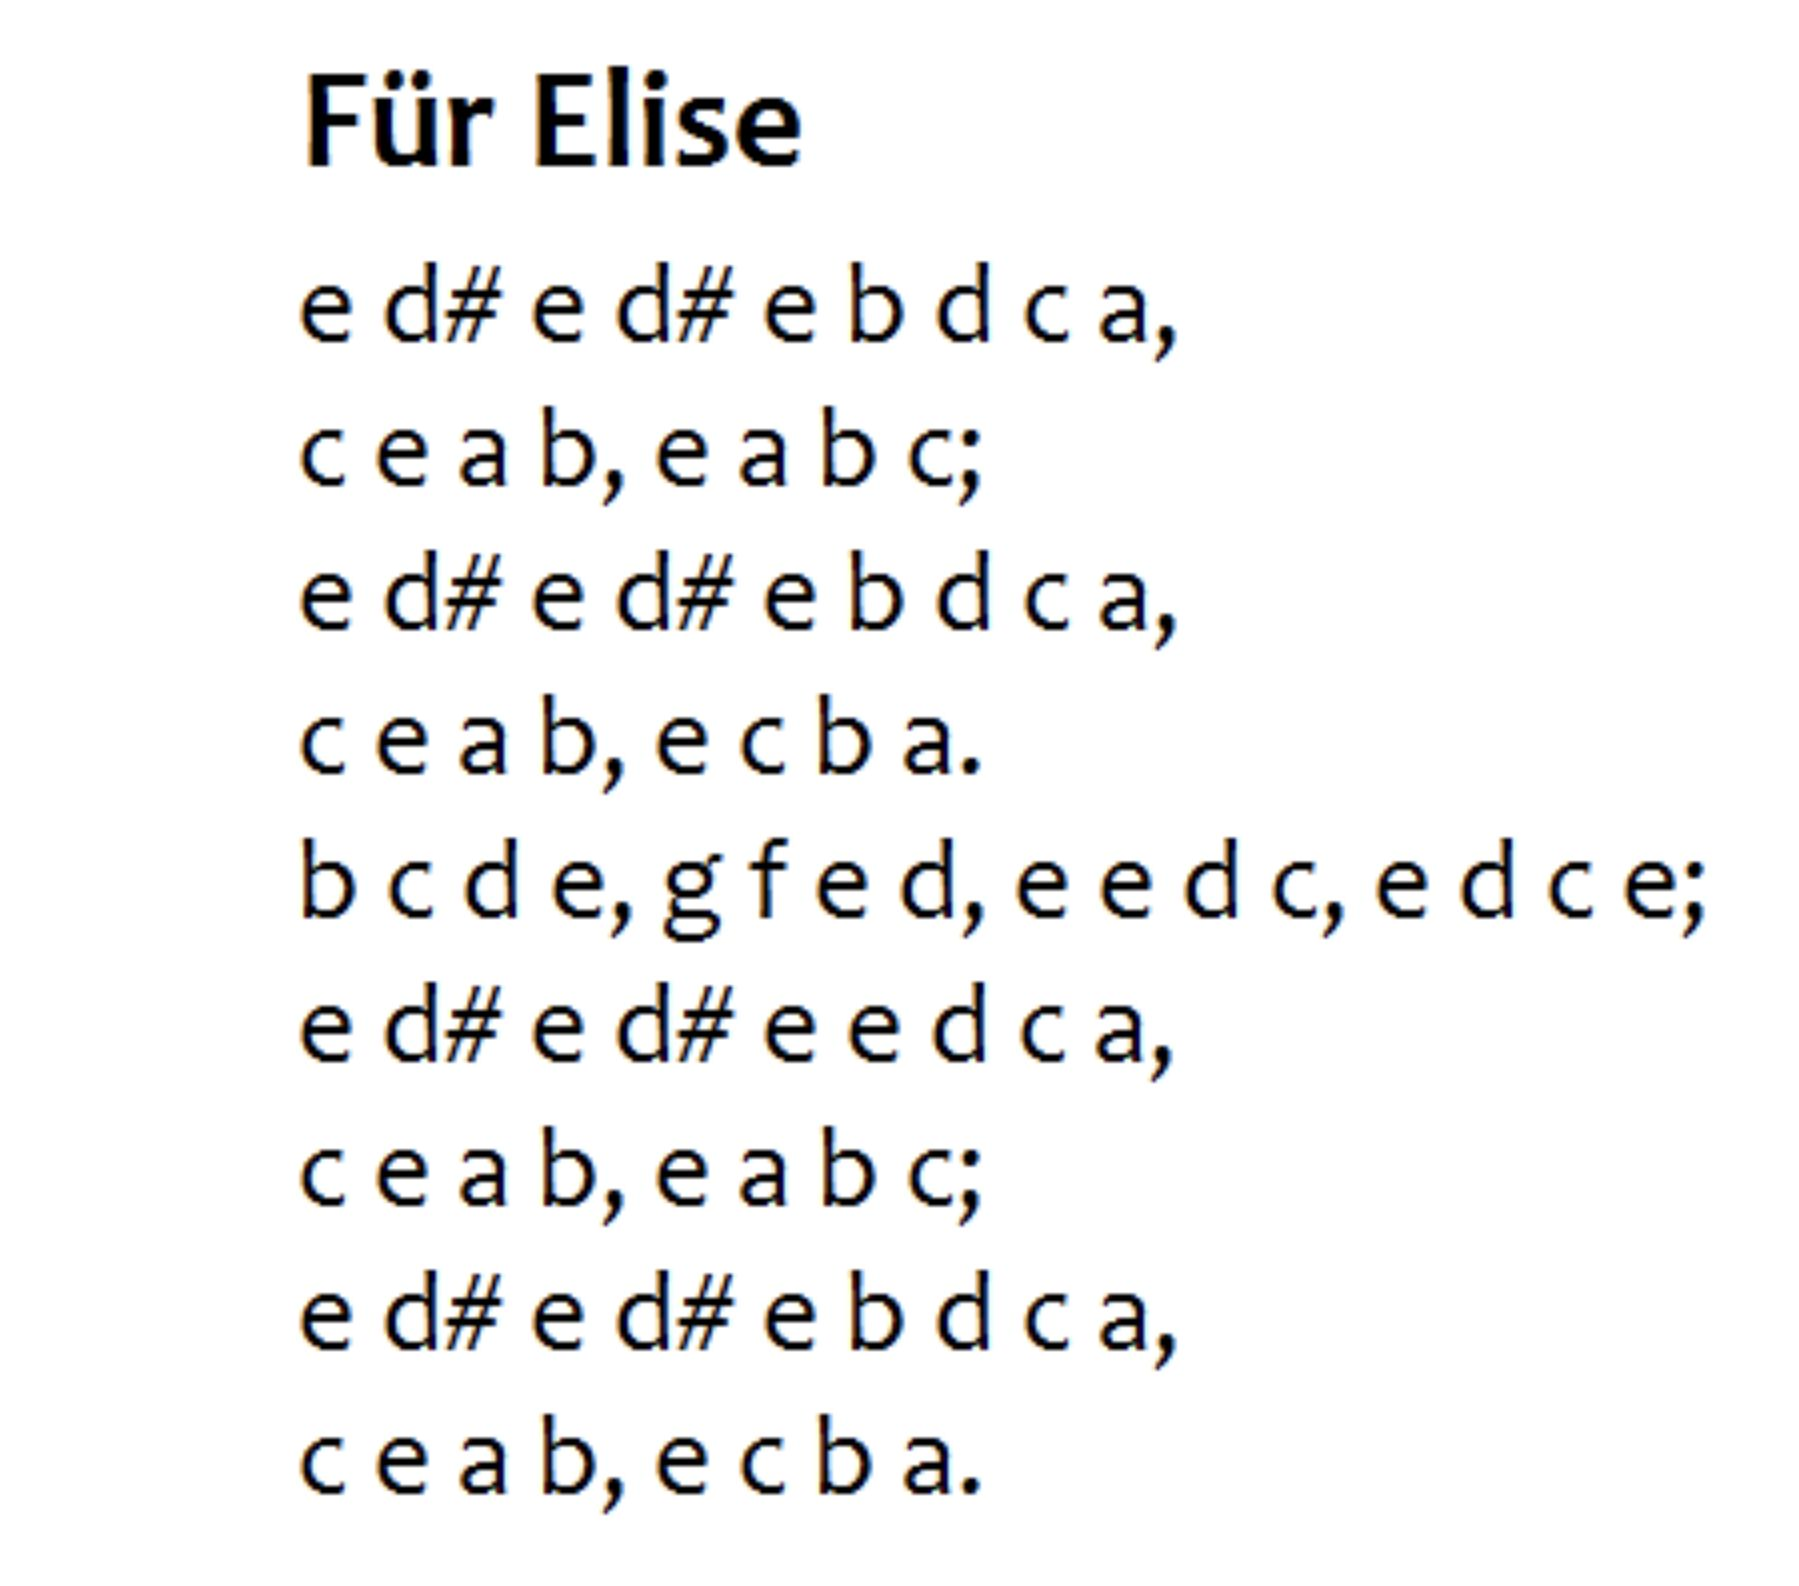 For People Who Wanna Learn The Easy Version Of Fur Elise With